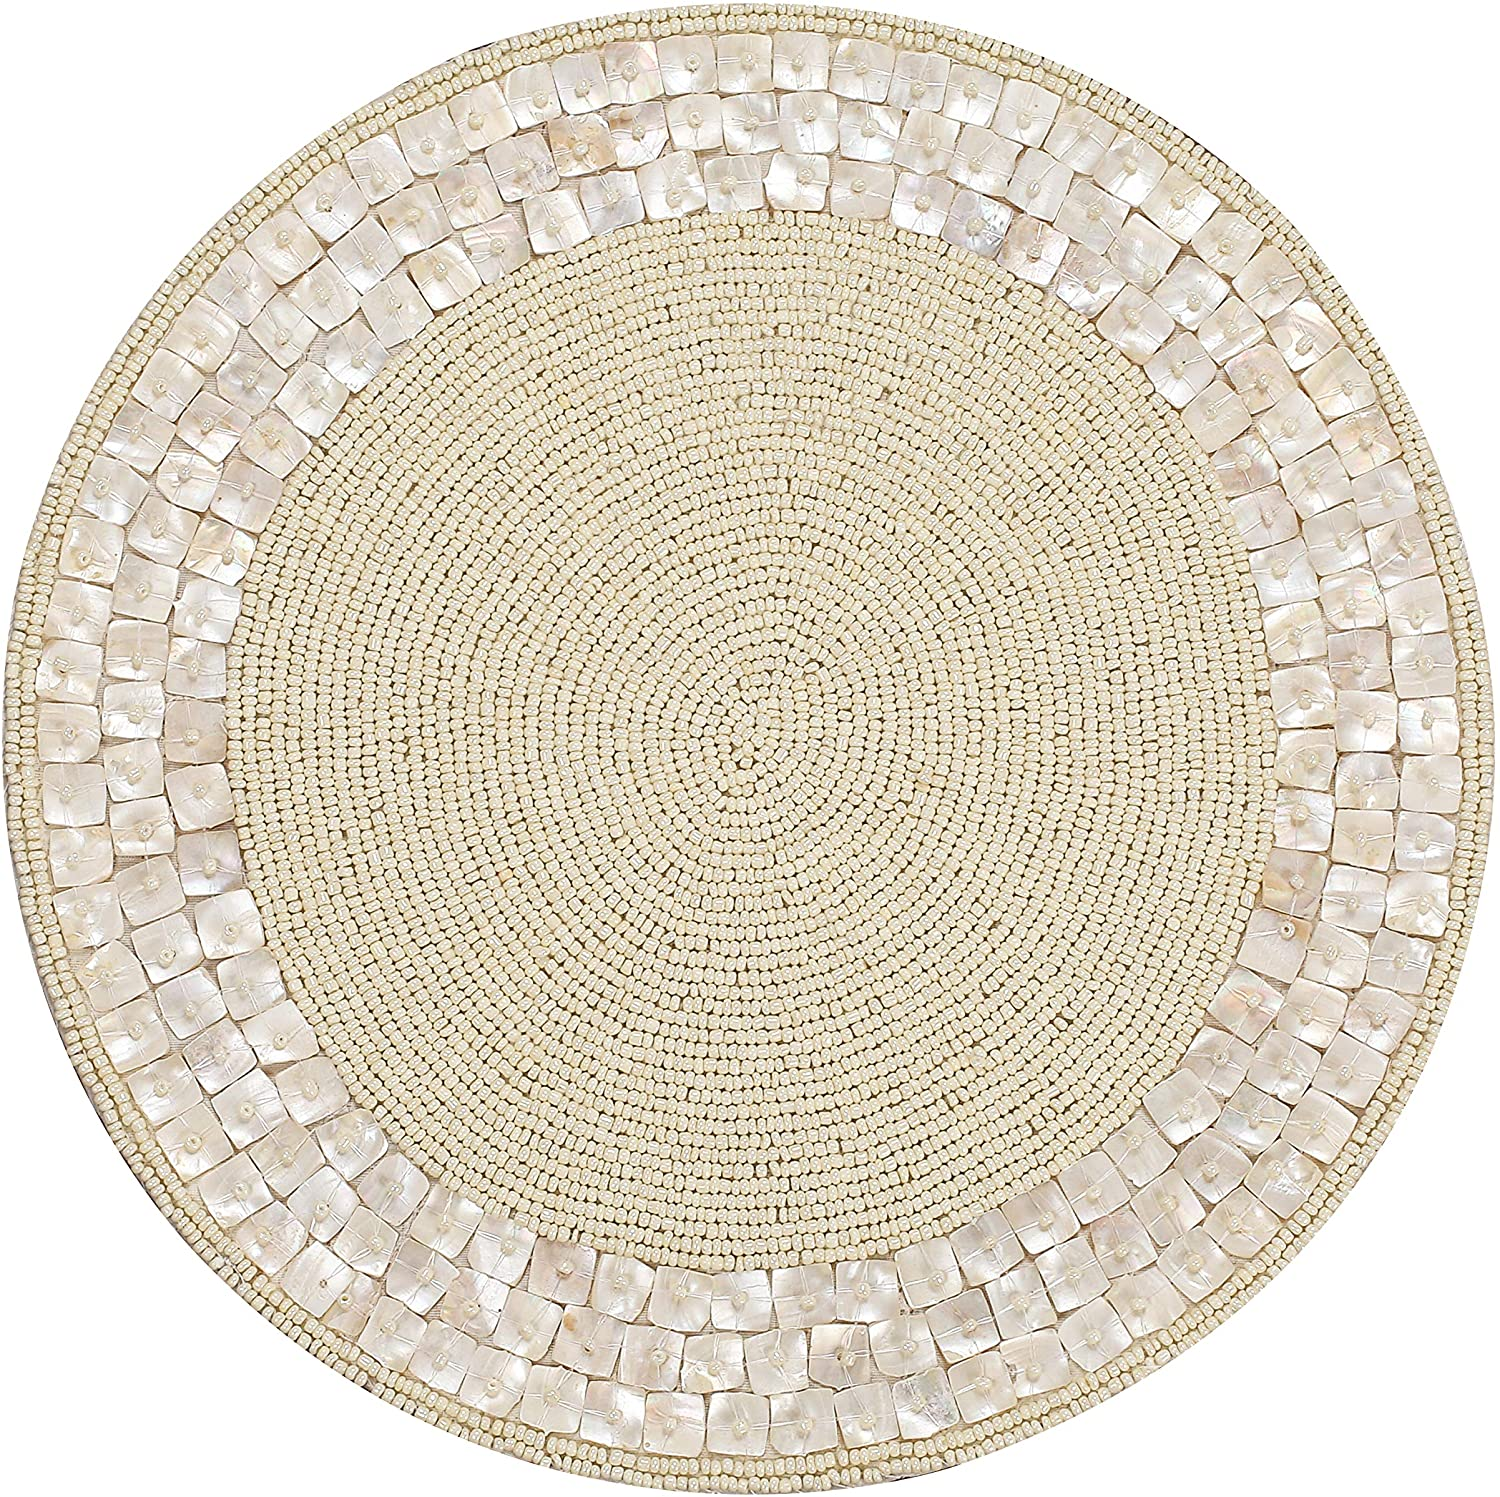 Beaded Placemats For Dining Table White Ivory Pack Of 1 Measure 13 Inches Beaded Placemats Round For Gathering Thanksgiving Occasional Decoration And Family Parties Celebrations Amazon Co Uk Kitchen Home